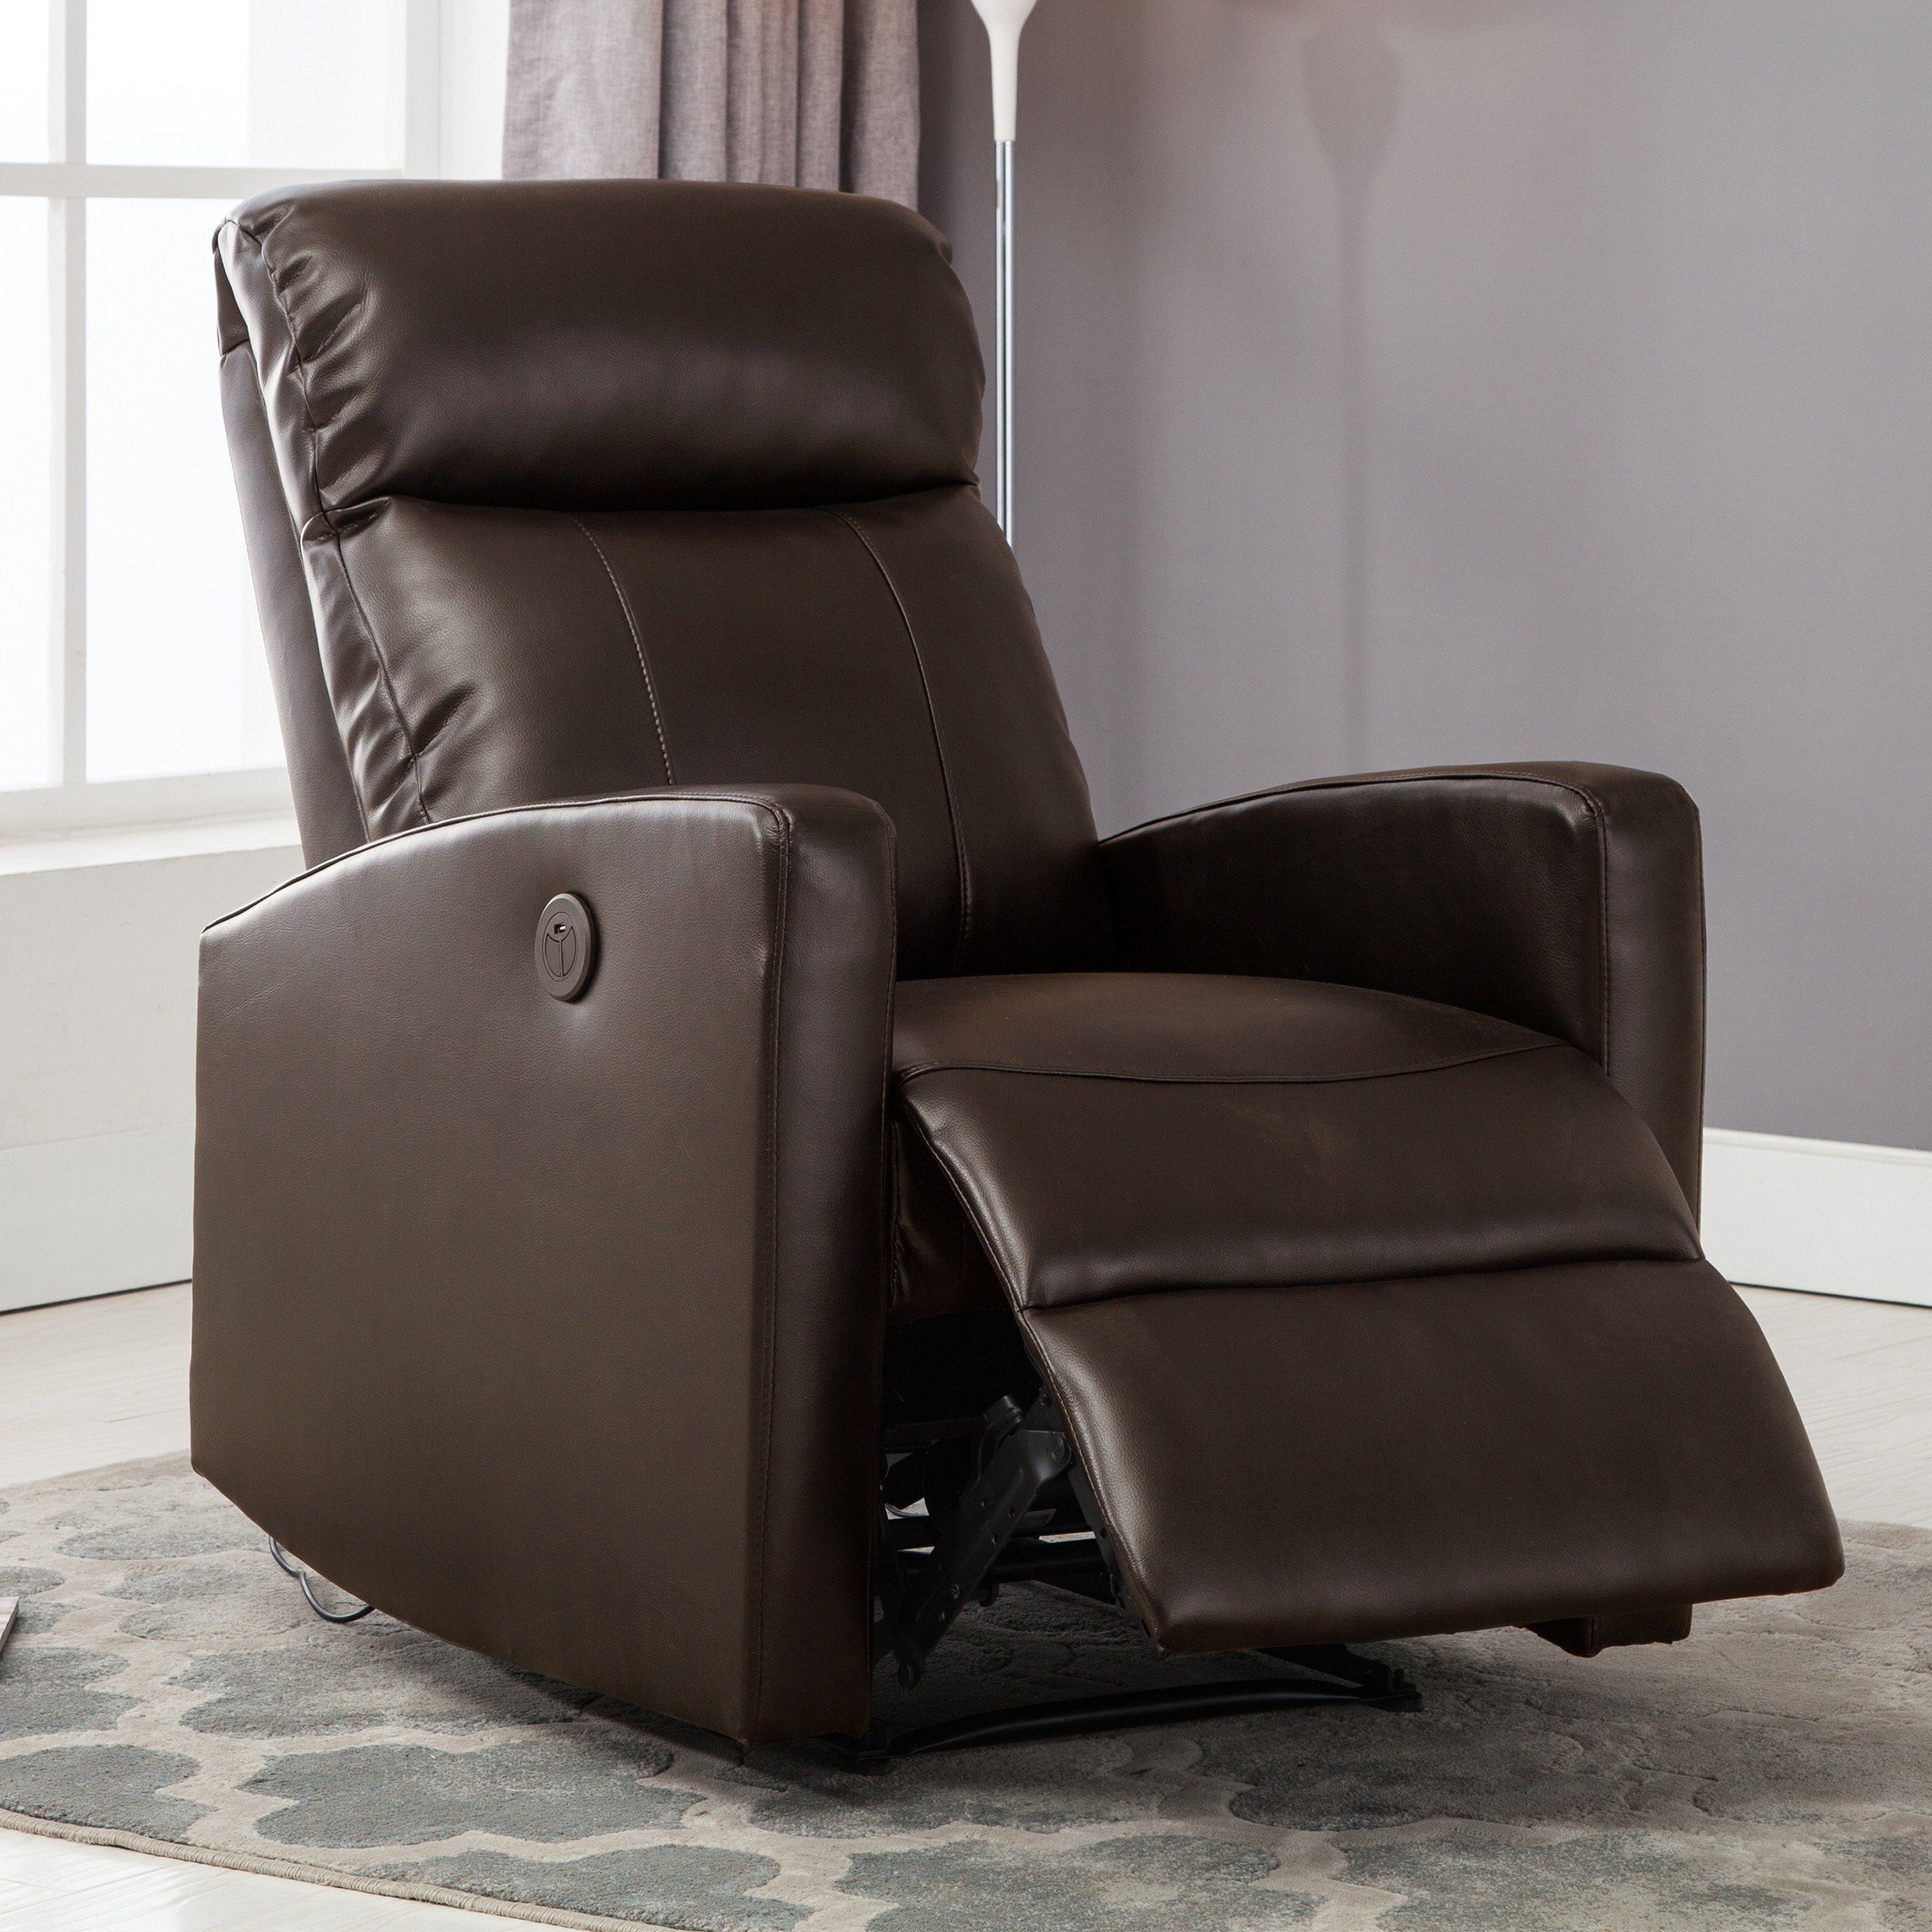 Sean Black Small Reading Power Recliner With Regard To Gannon Linen Power Swivel Recliners (Image 20 of 20)